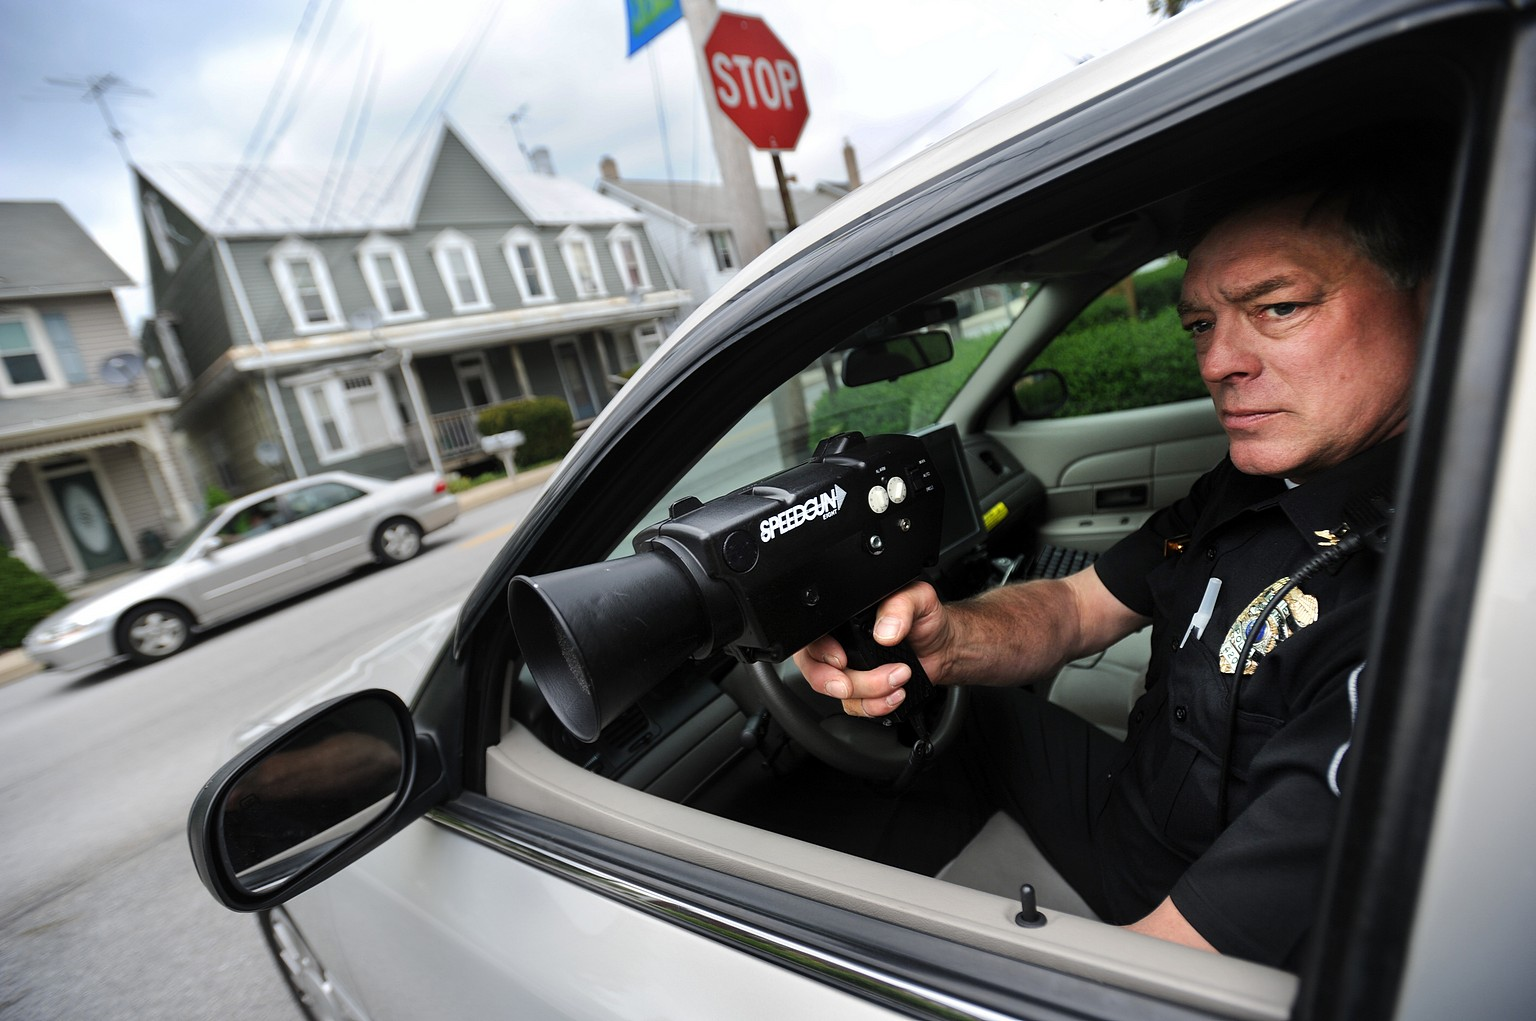 Southern Regional Police Dept Chief of Police Chief James Boddington demonstrates a radar gun, which are not used by municipal police in the state of Pennsylvania. Several state legislators support a bill to change that. Local police say the current law is ridiculous, including Boddington, who says radar is a faster, cheaper, more accurate tool. YORK DAILY RECORD/SUNDAY NEWS--JASON PLOTKIN